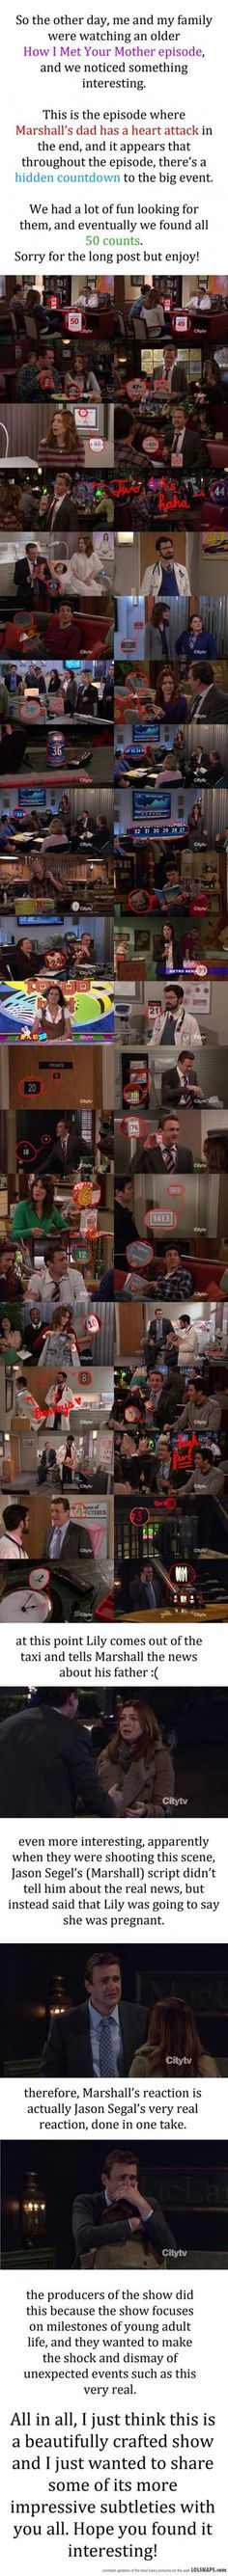 Hidden Messages From 'How I Met Your Mother'... #HIMYM